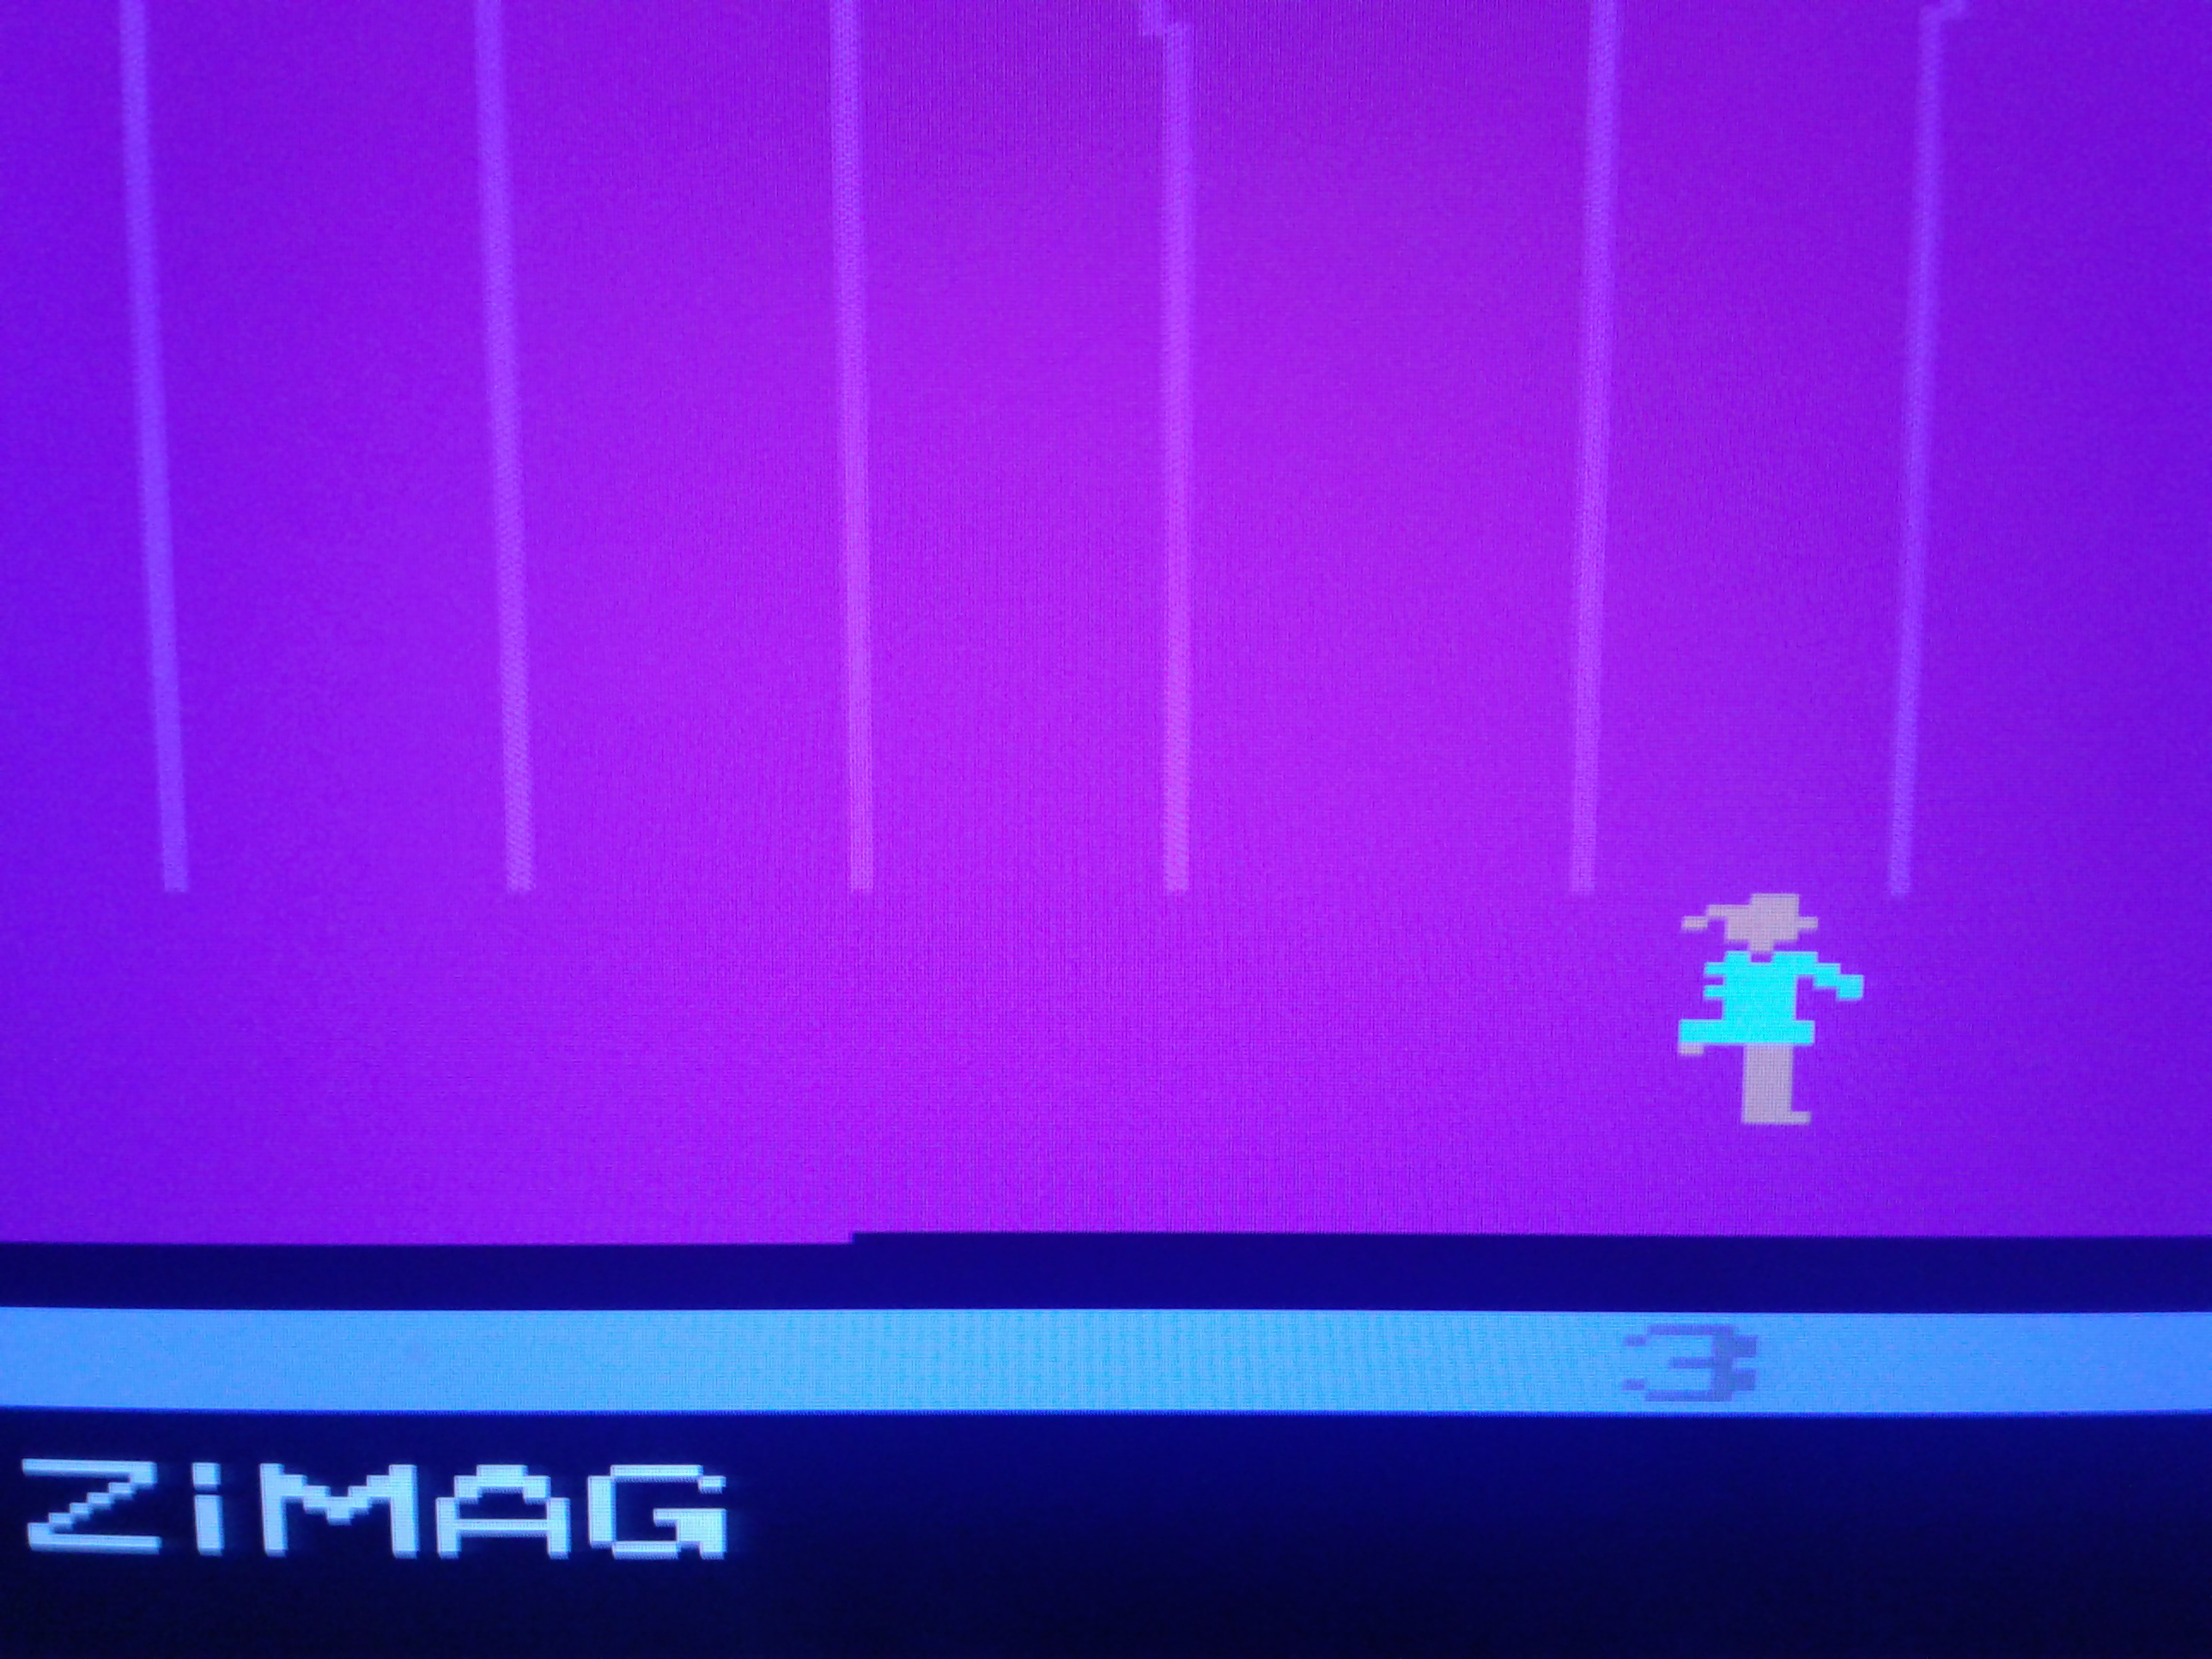 Mark: Dishaster: Game 3 (Atari 2600 Emulated) 8,550 points on 2019-02-13 03:28:27